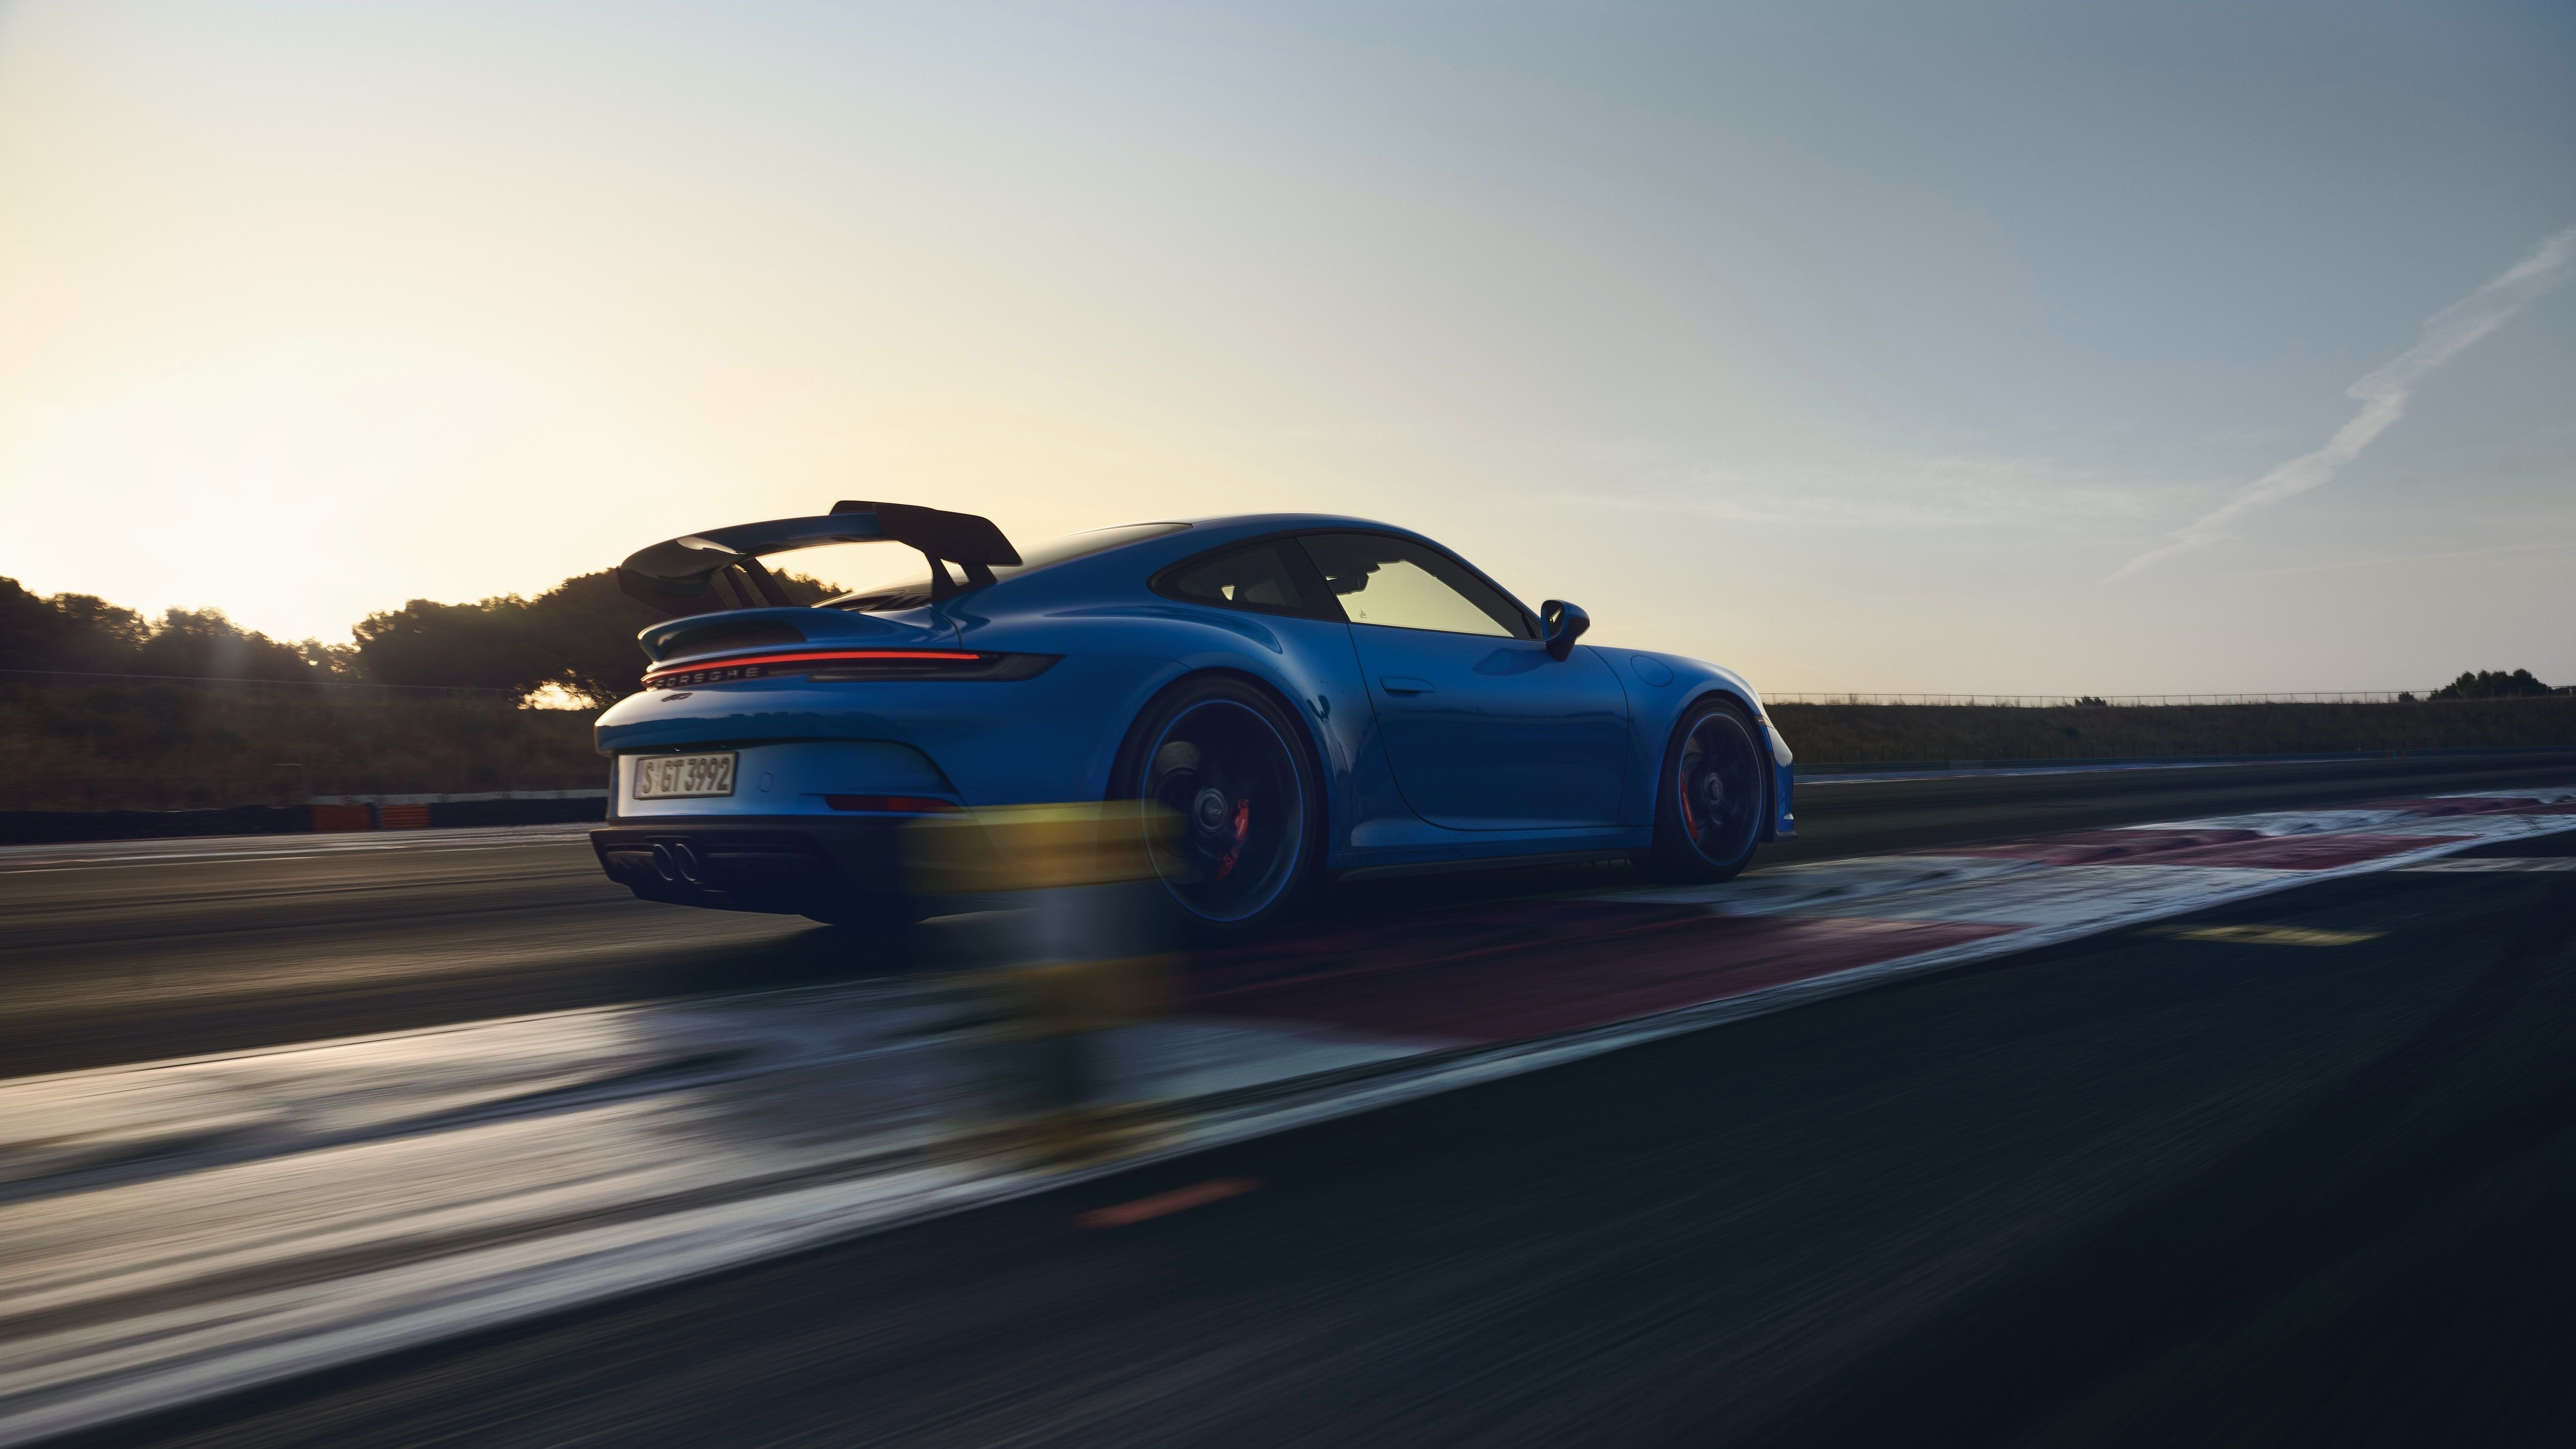 Porsche's latest might be a dying breed